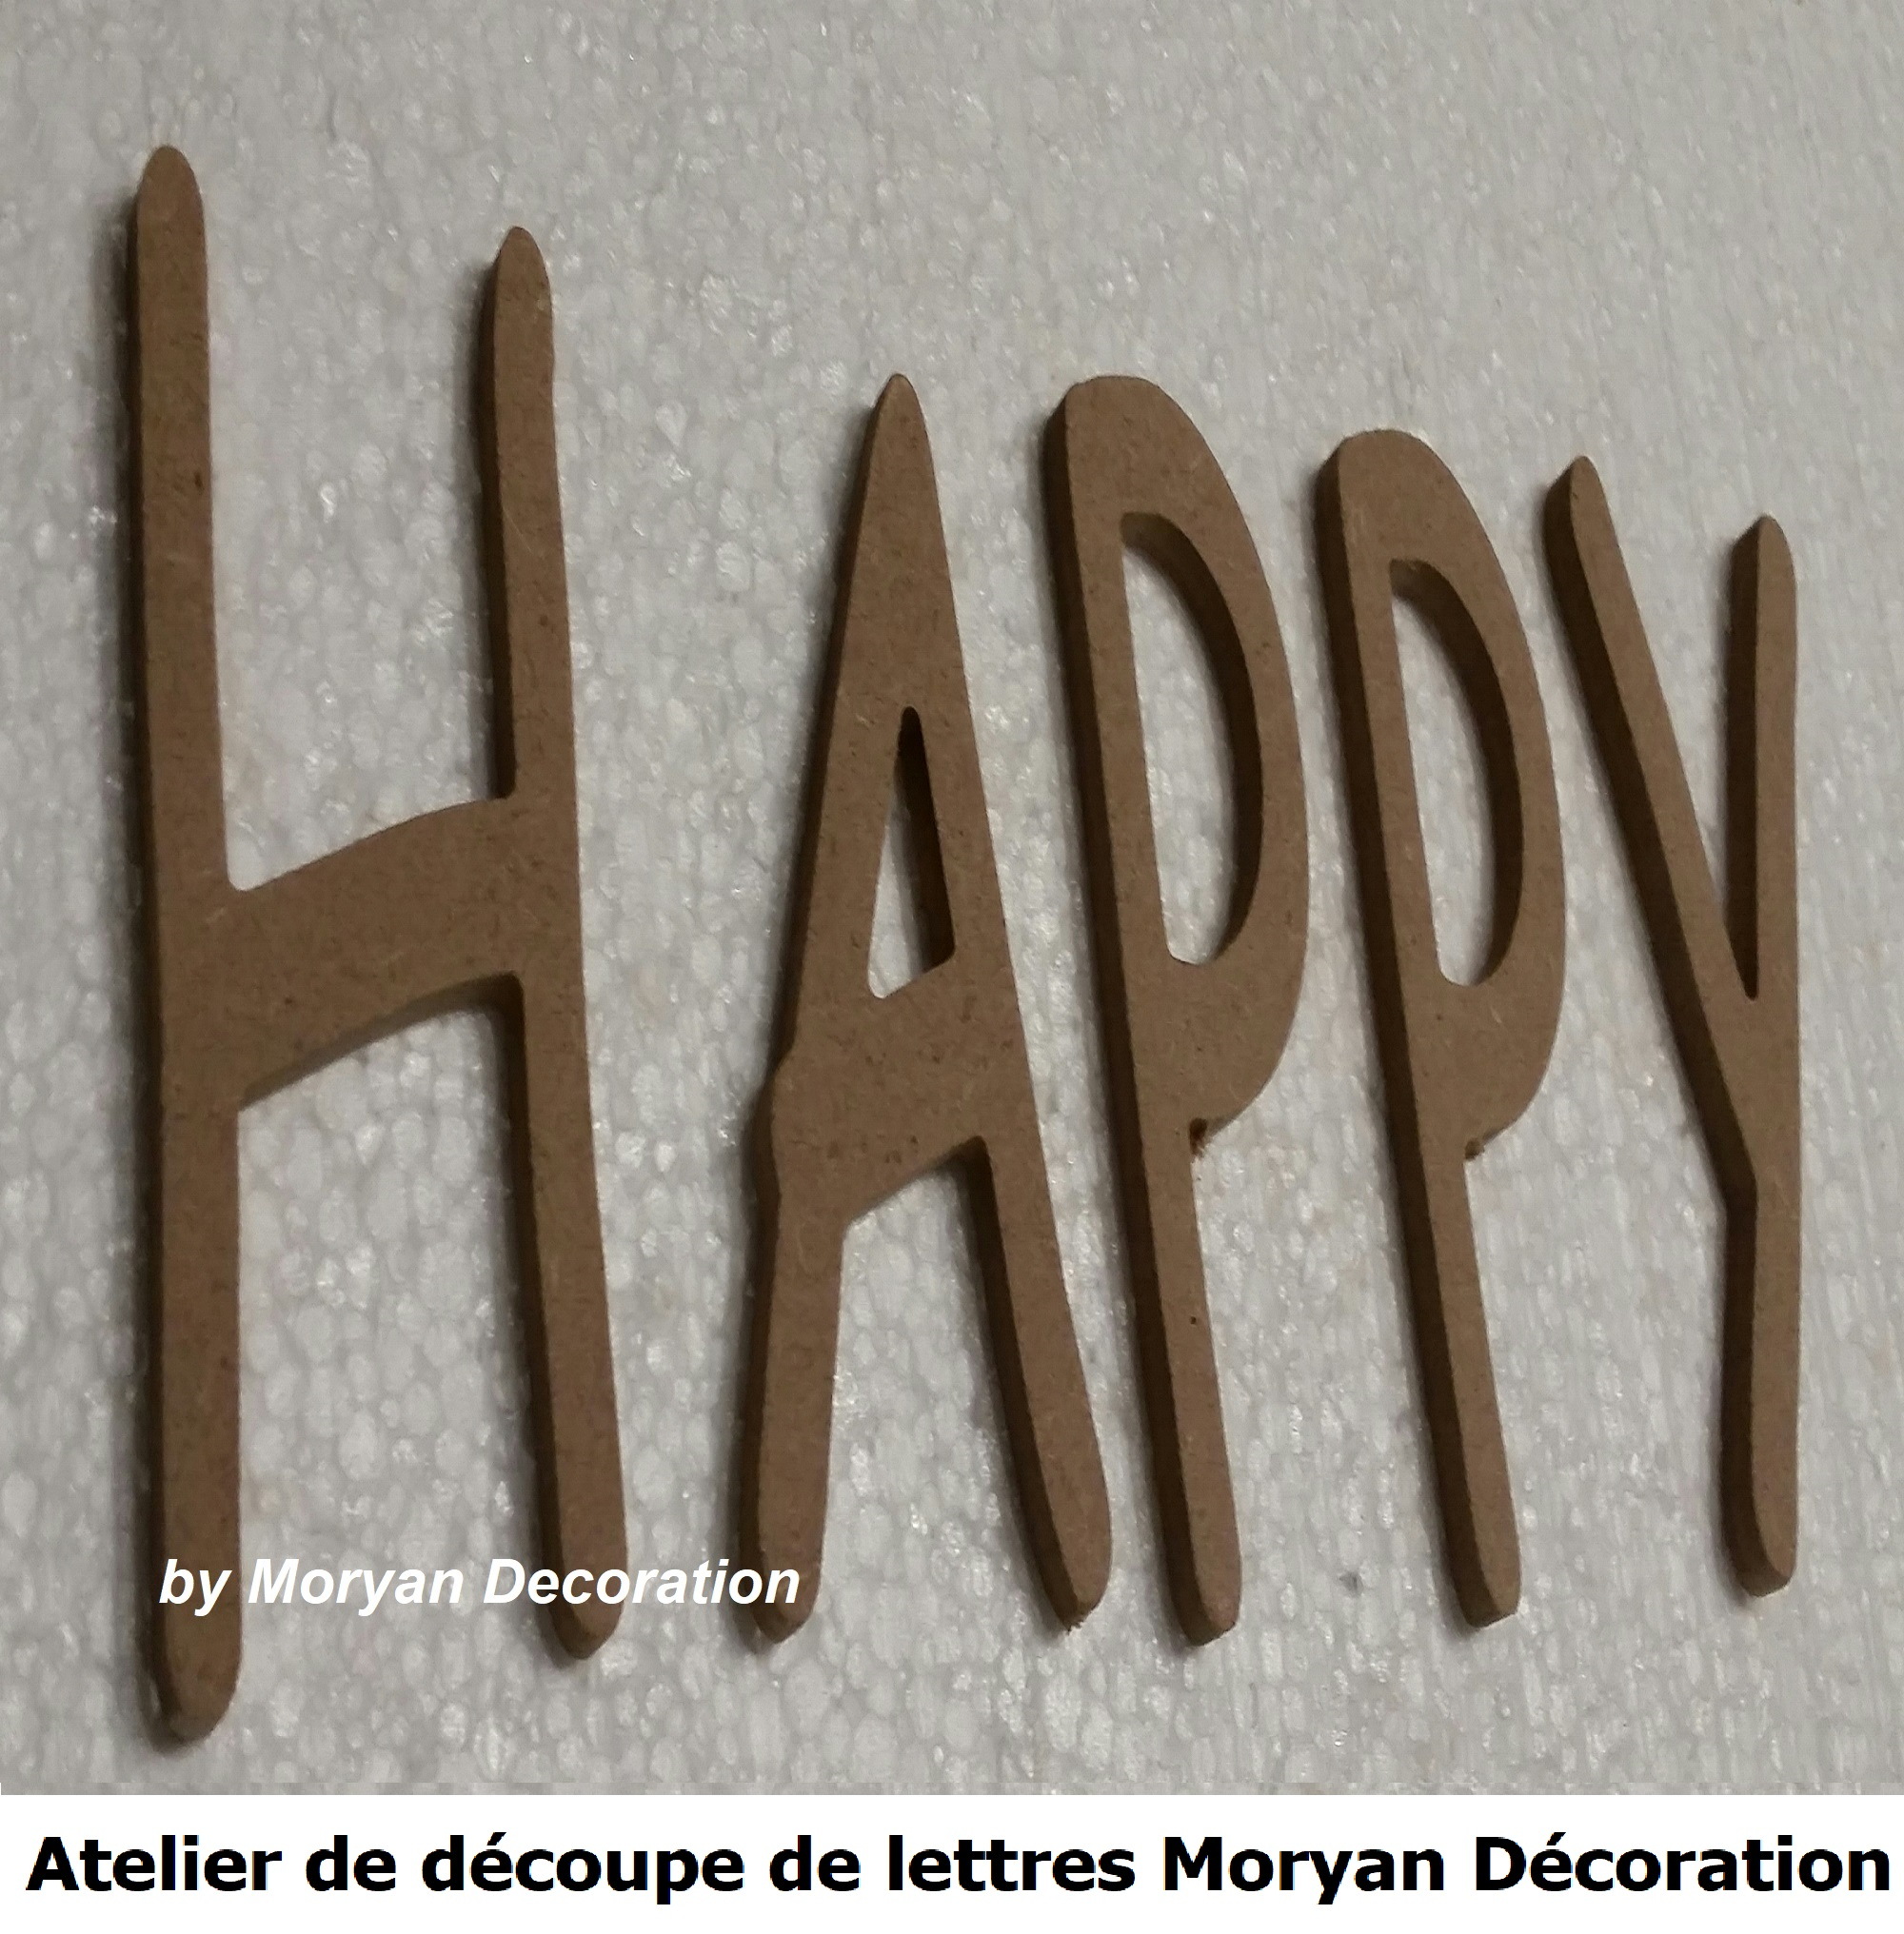 Lettre decorative HAPPY